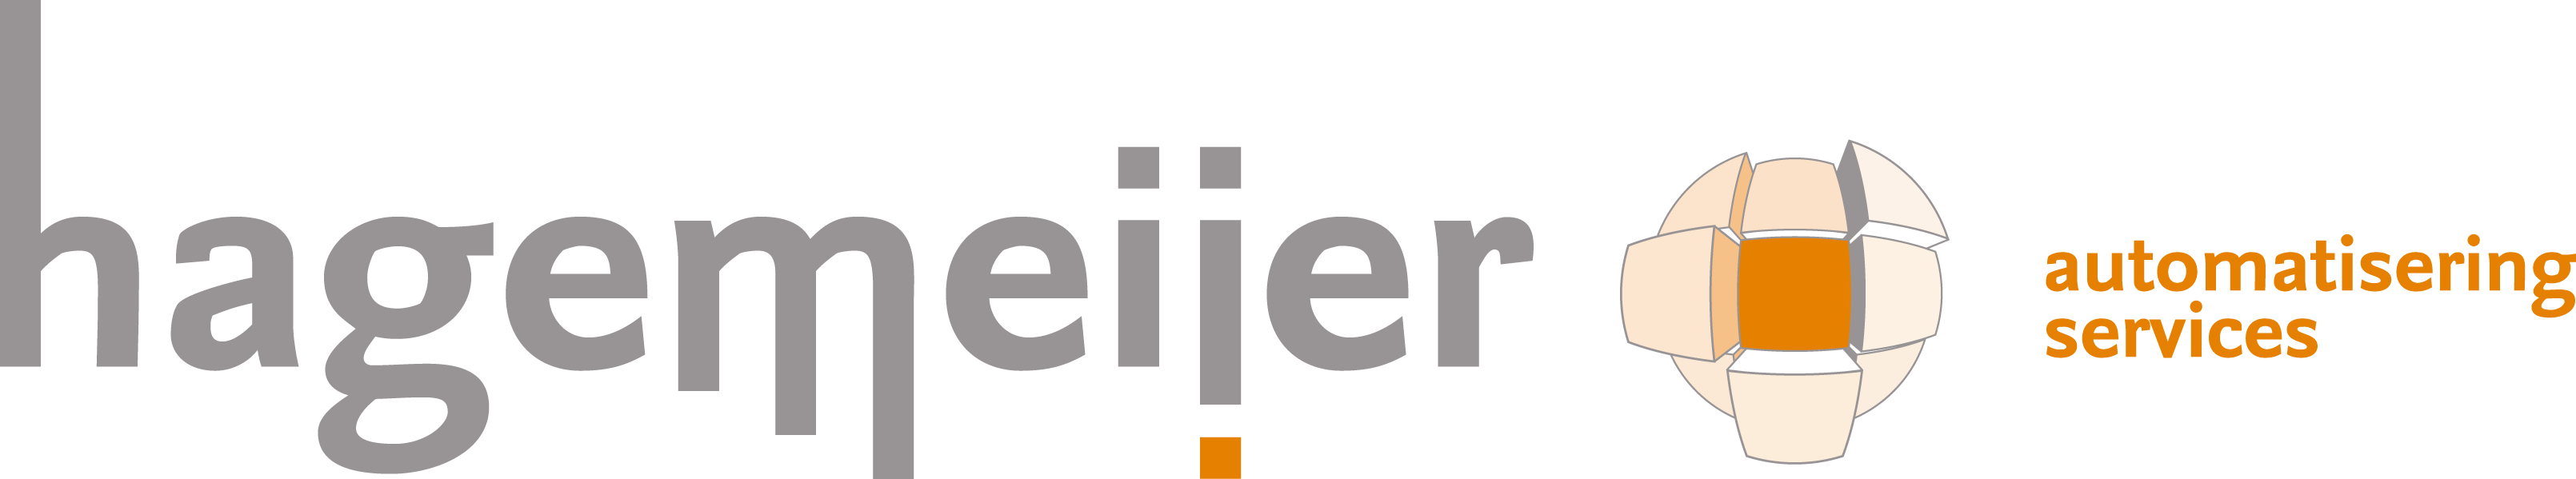 Hagemeijer-Automatisering-Service - Partell partners